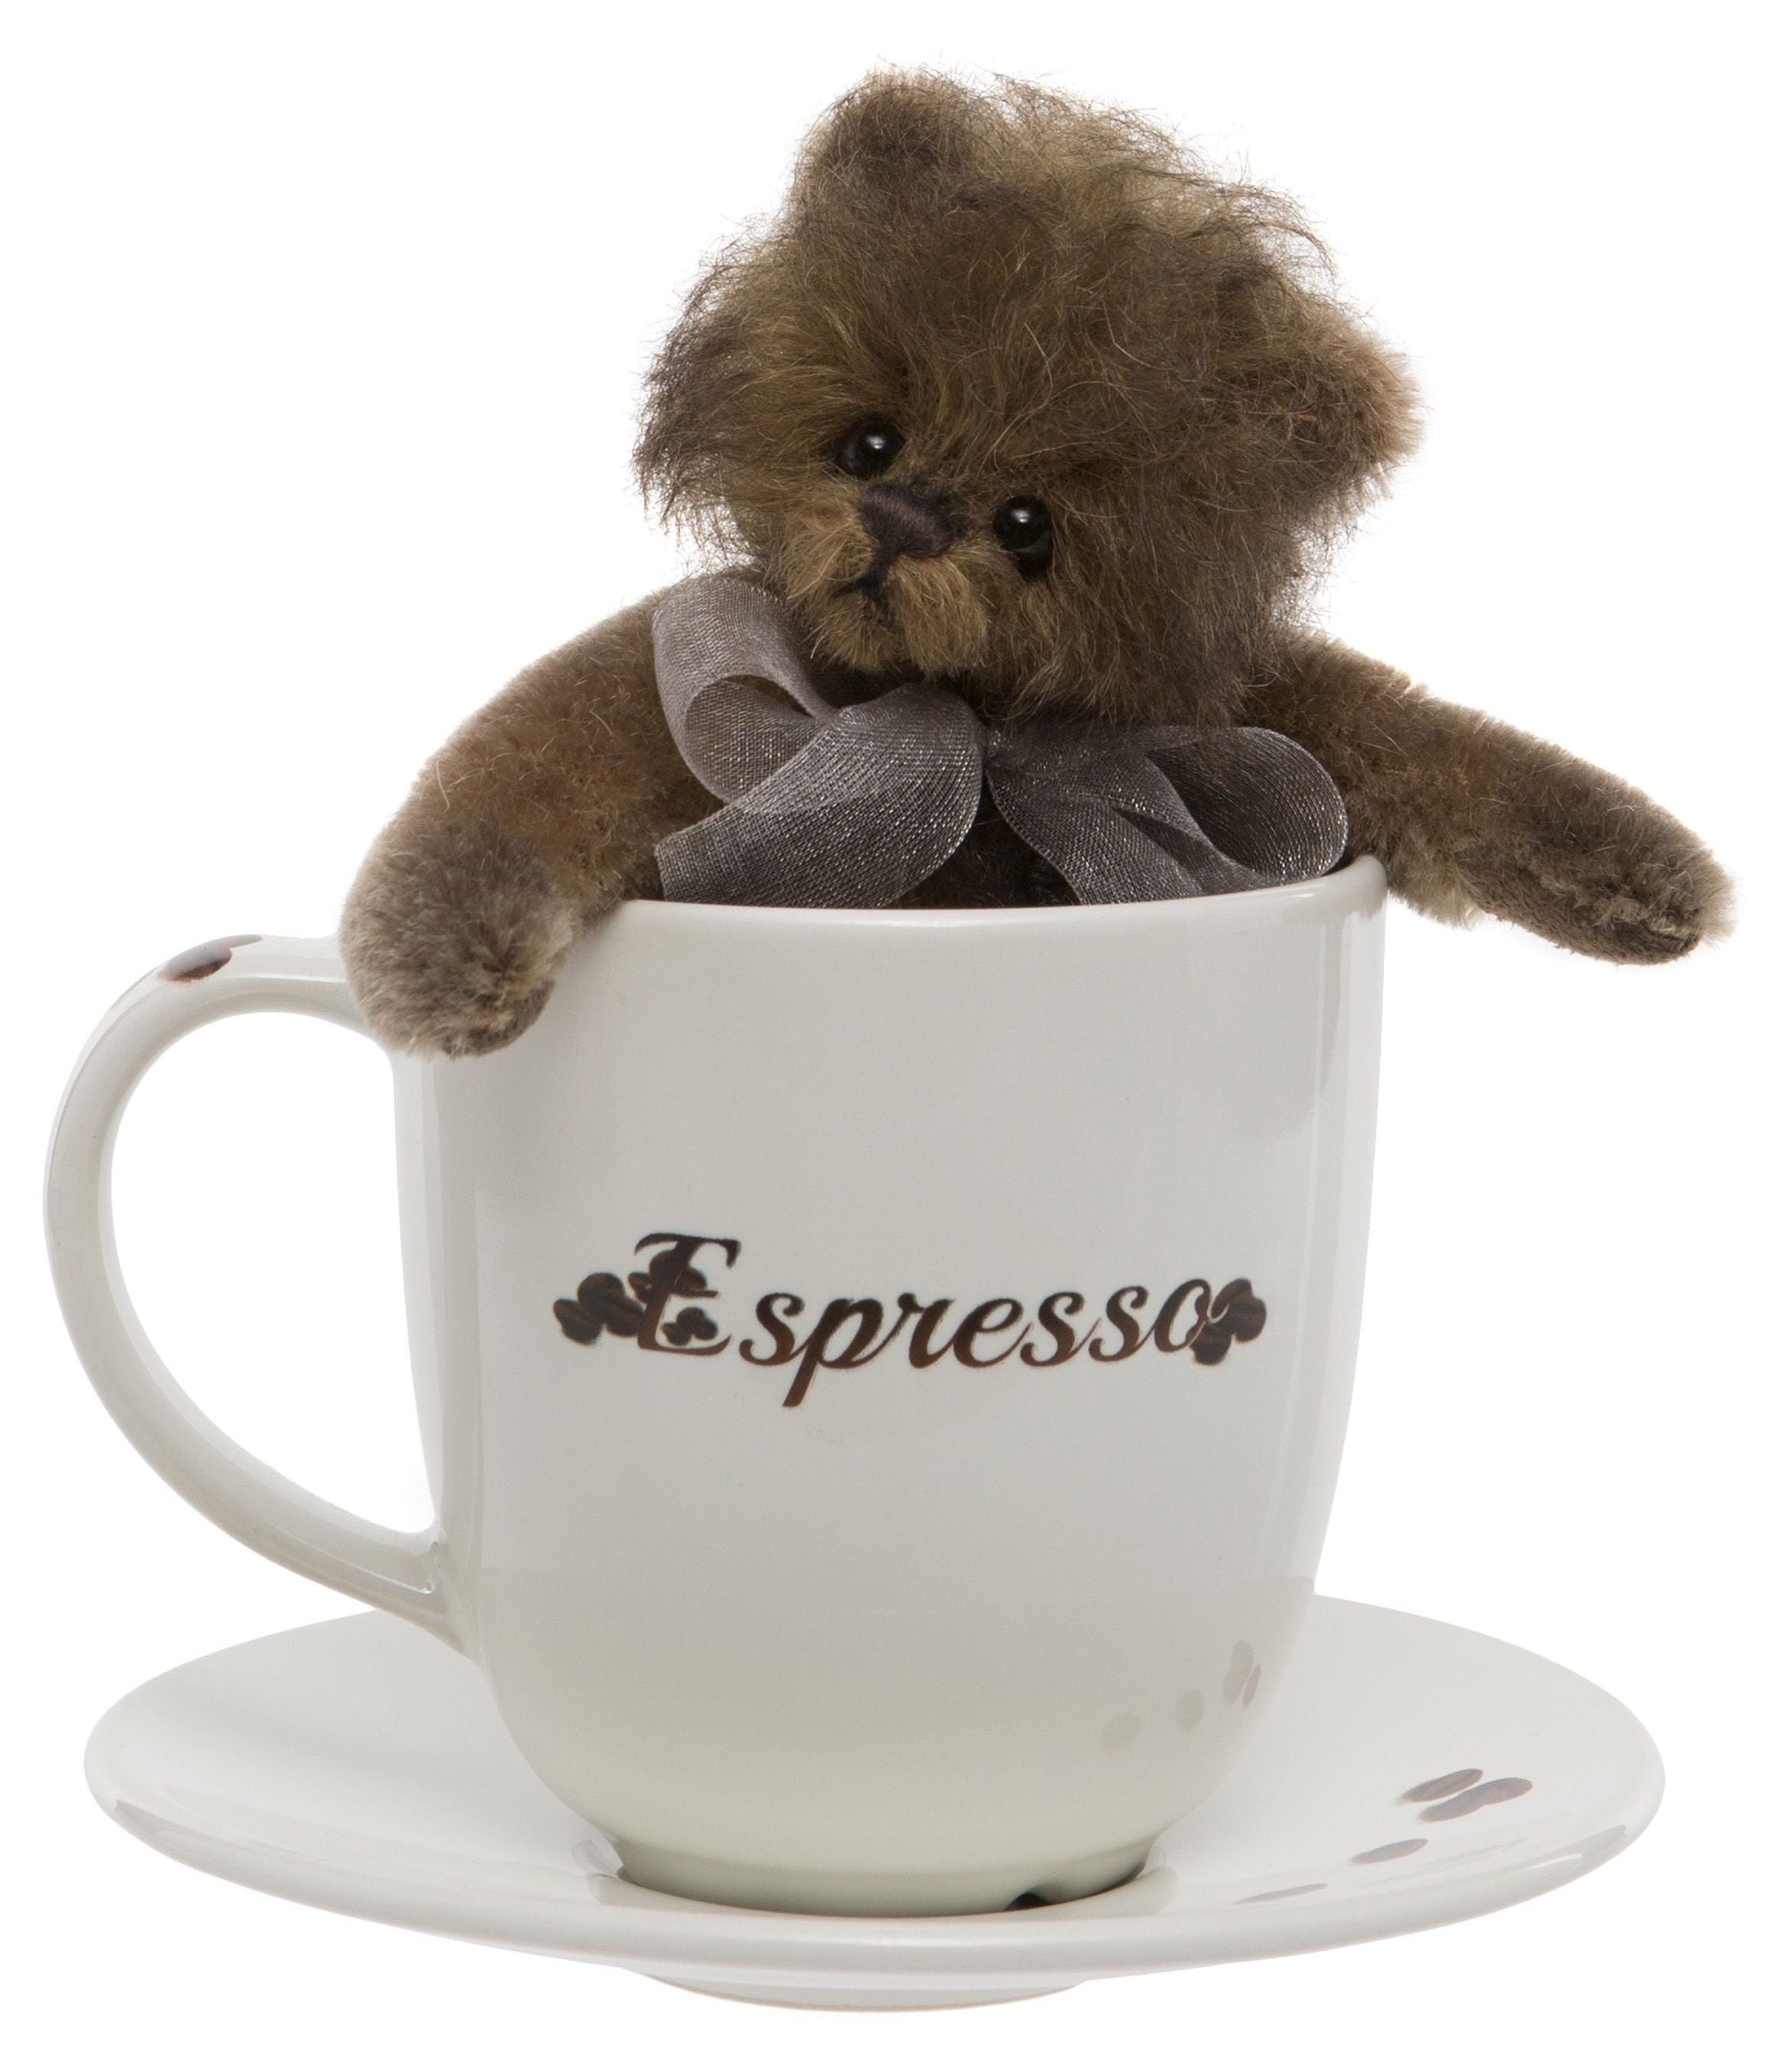 Charlie Bears Espresso Teddy Bear Cup and Saucer Gift Set